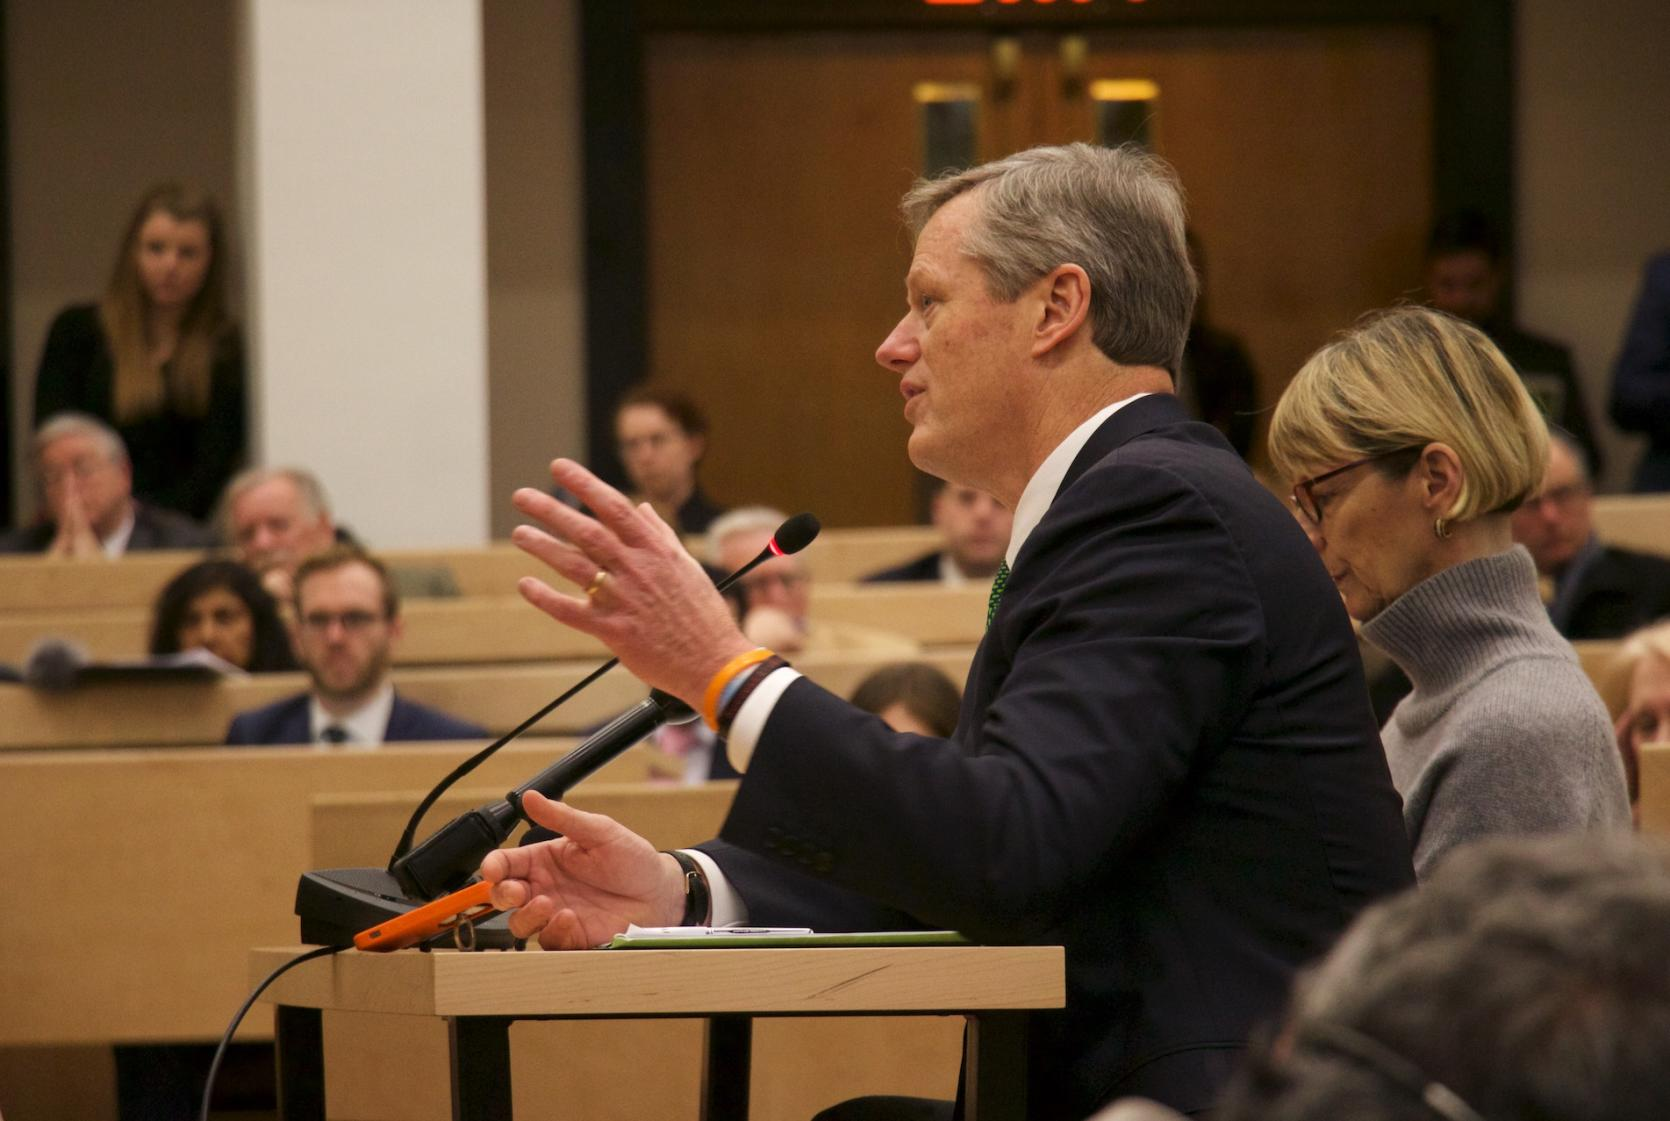 Governor Charlie Baker and Secretary Marylou Sudders testify on the administration's CARE Act.